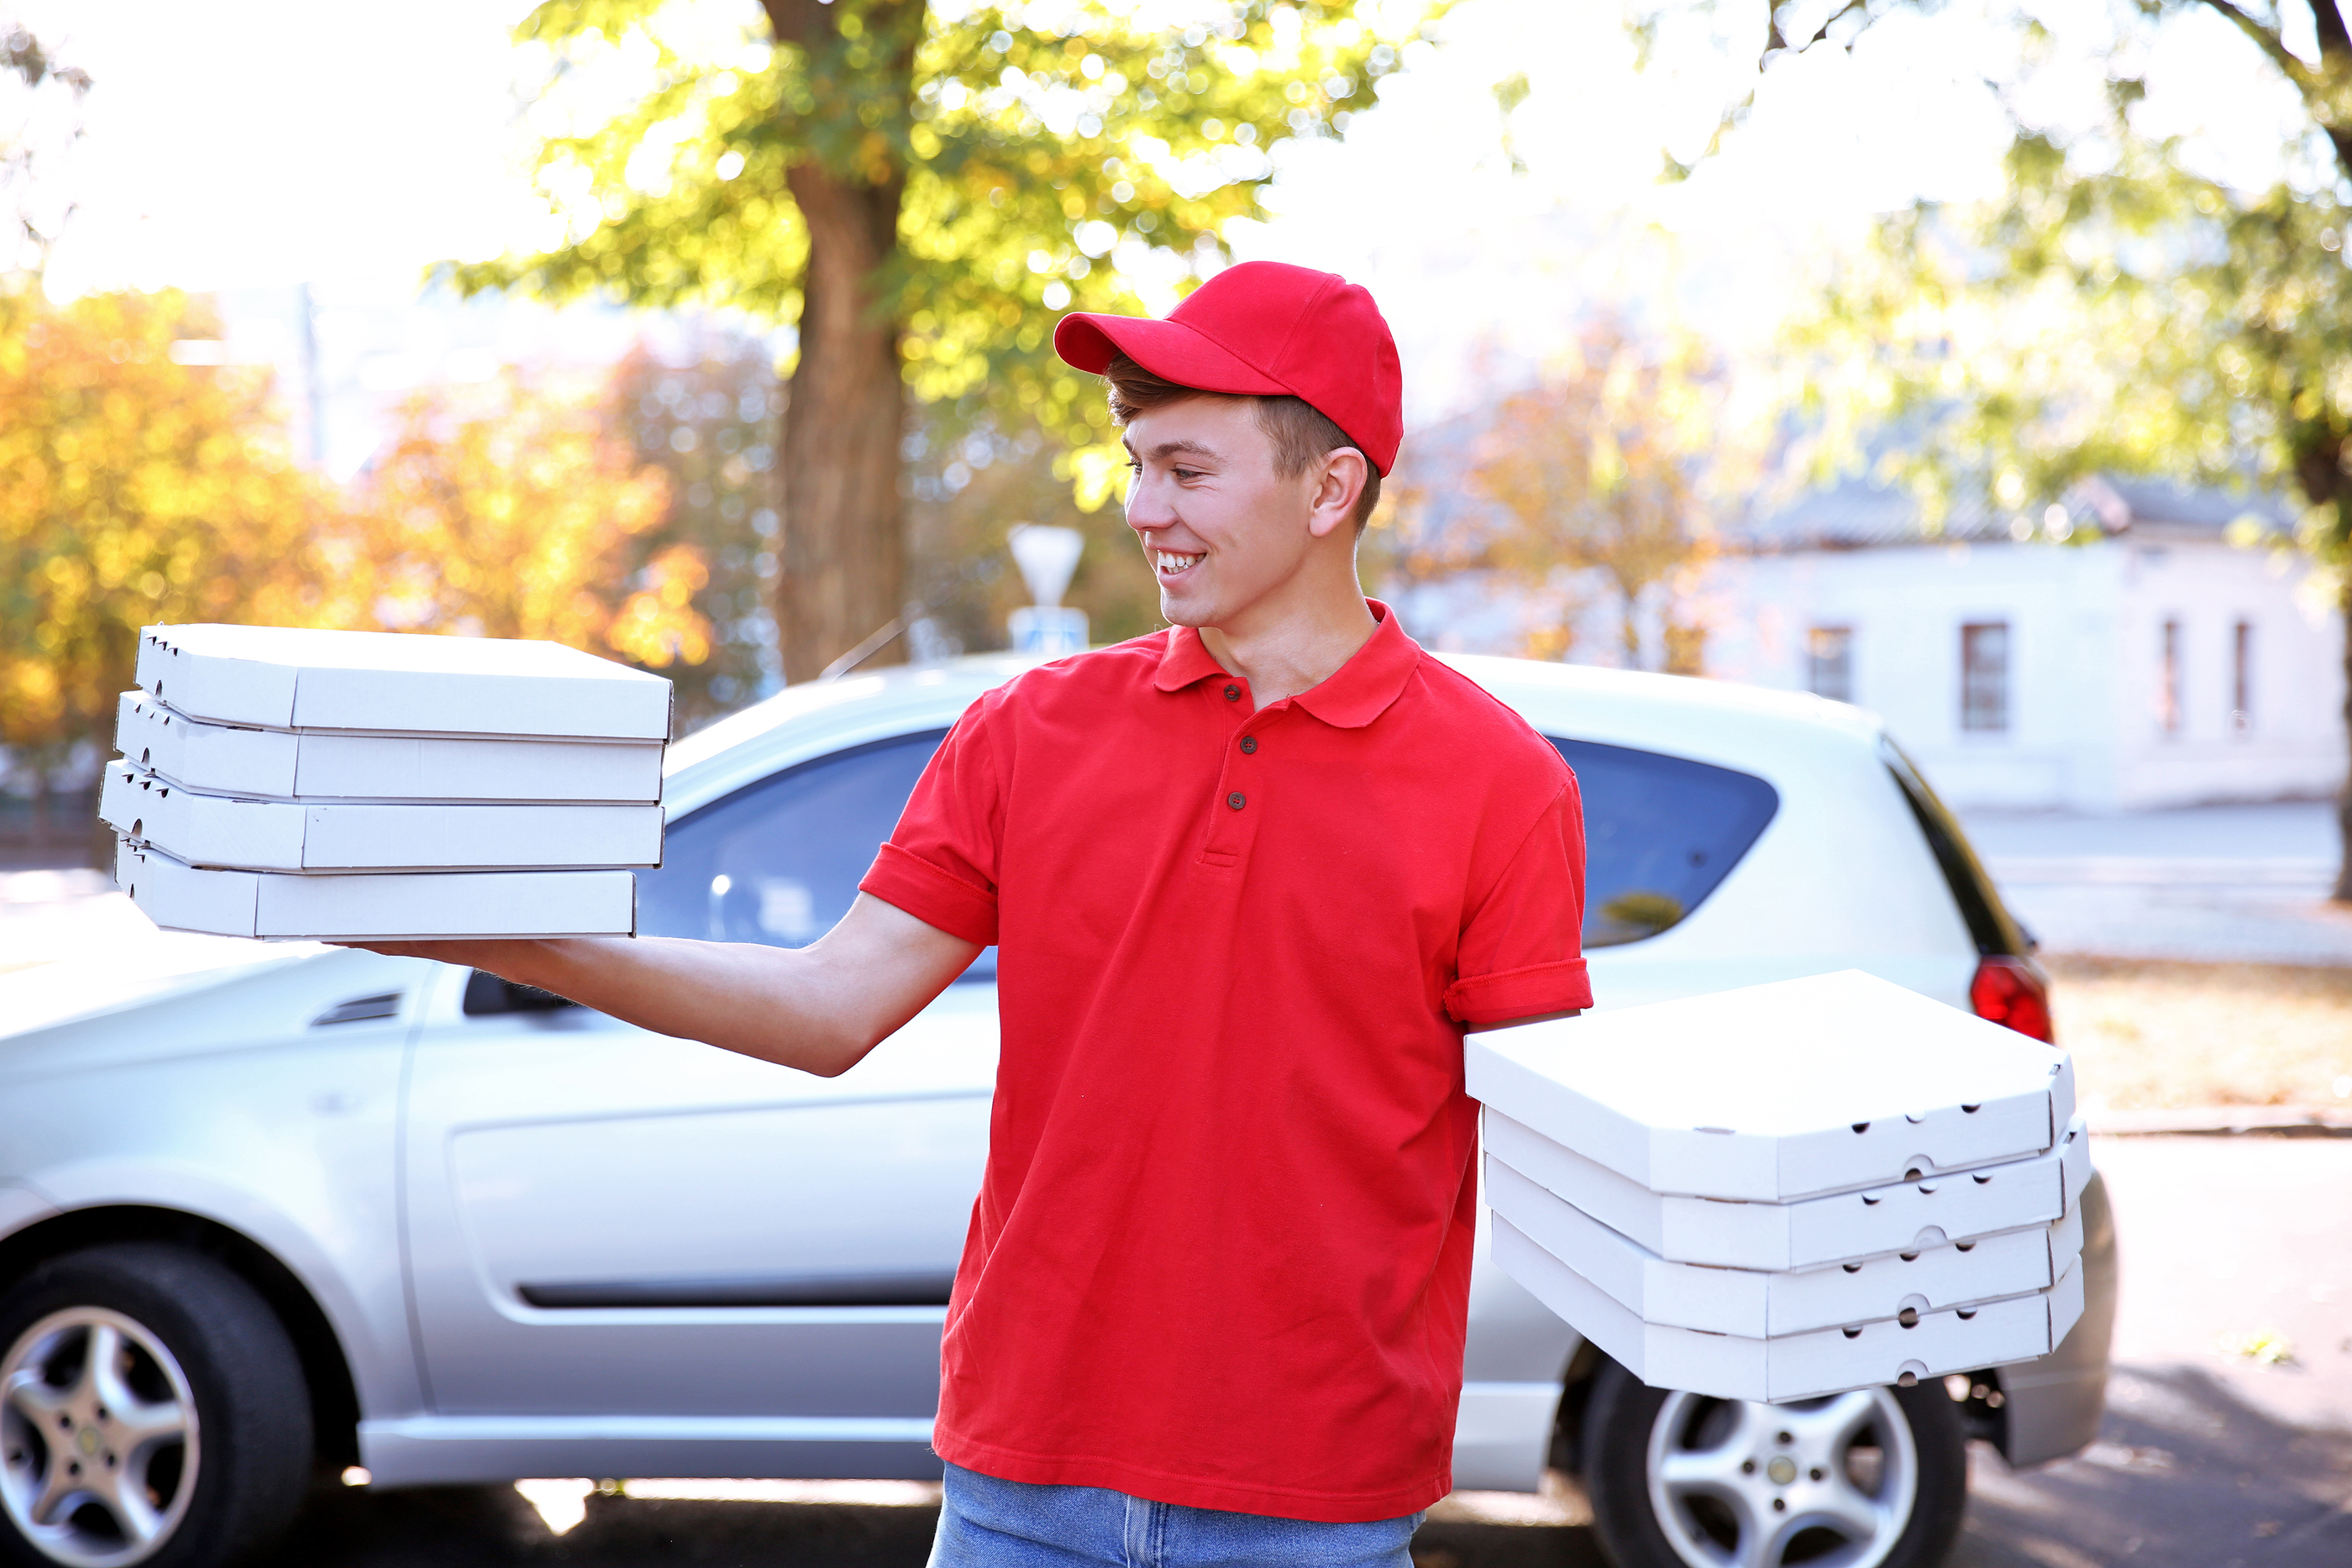 bigstock-Pizza-delivery-boy-holding-box-112695413